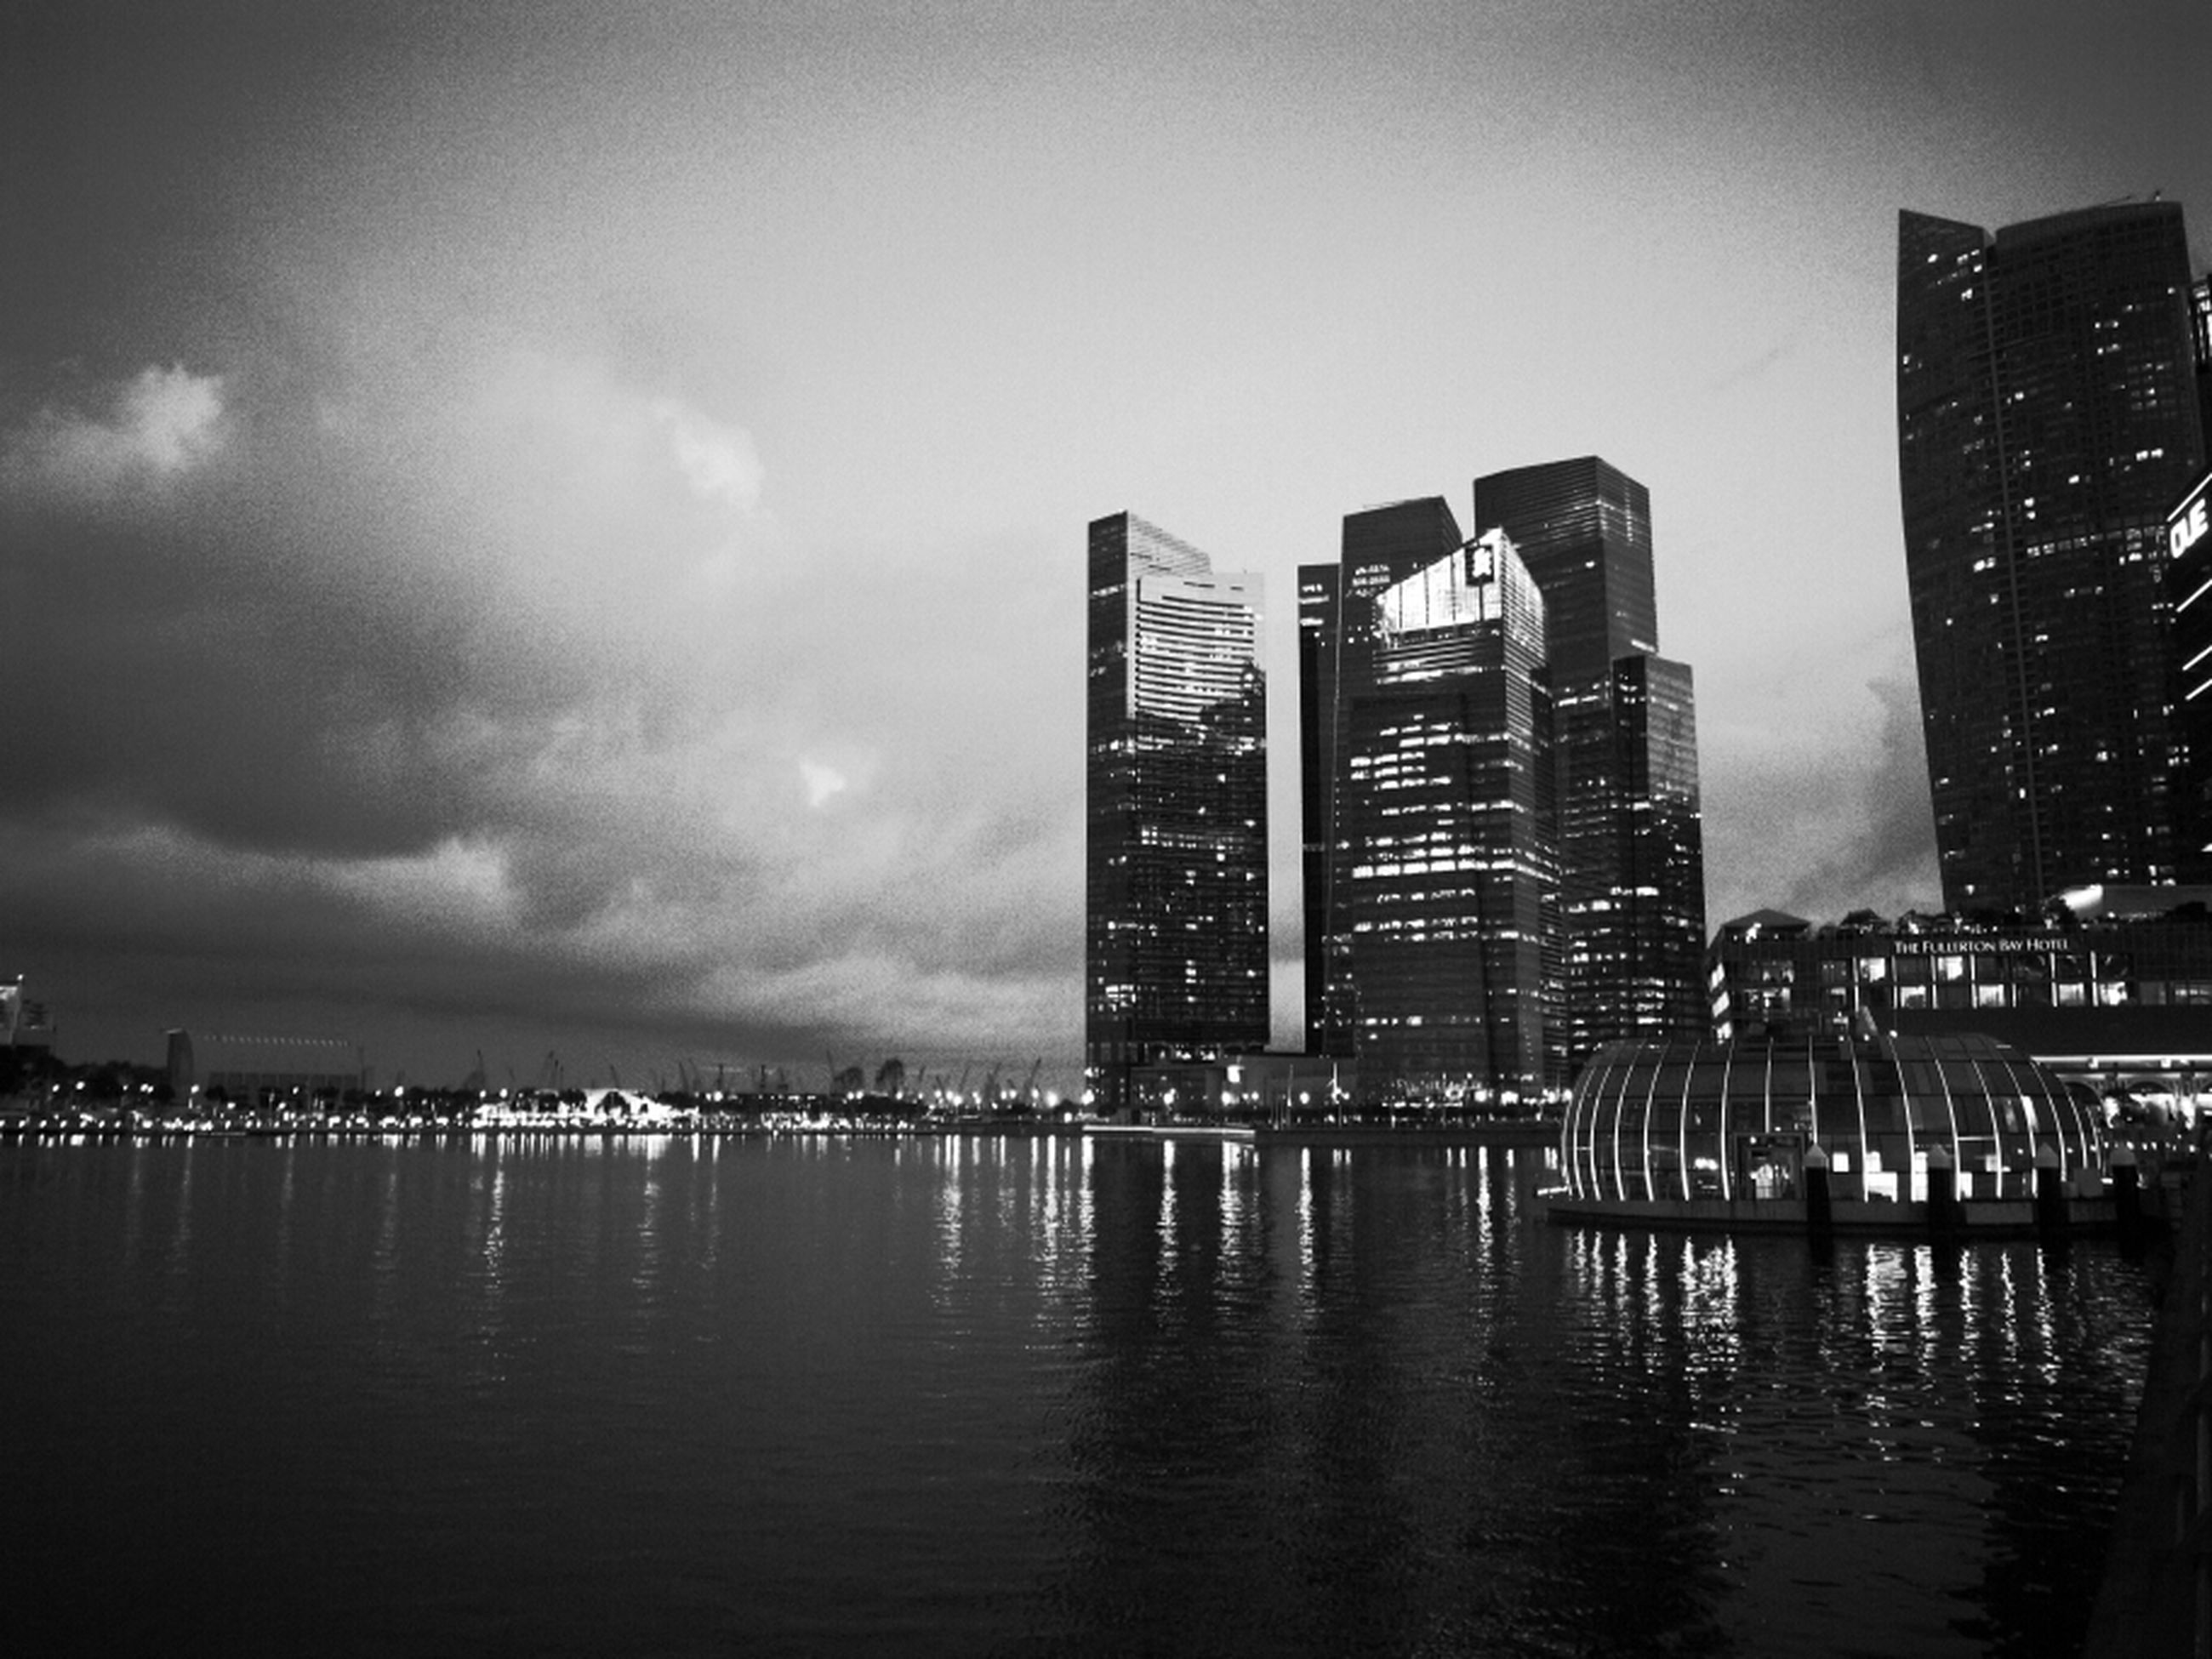 water, building exterior, architecture, built structure, waterfront, sky, city, illuminated, reflection, skyscraper, night, sea, river, dusk, cloud - sky, cityscape, urban skyline, tall - high, tower, modern